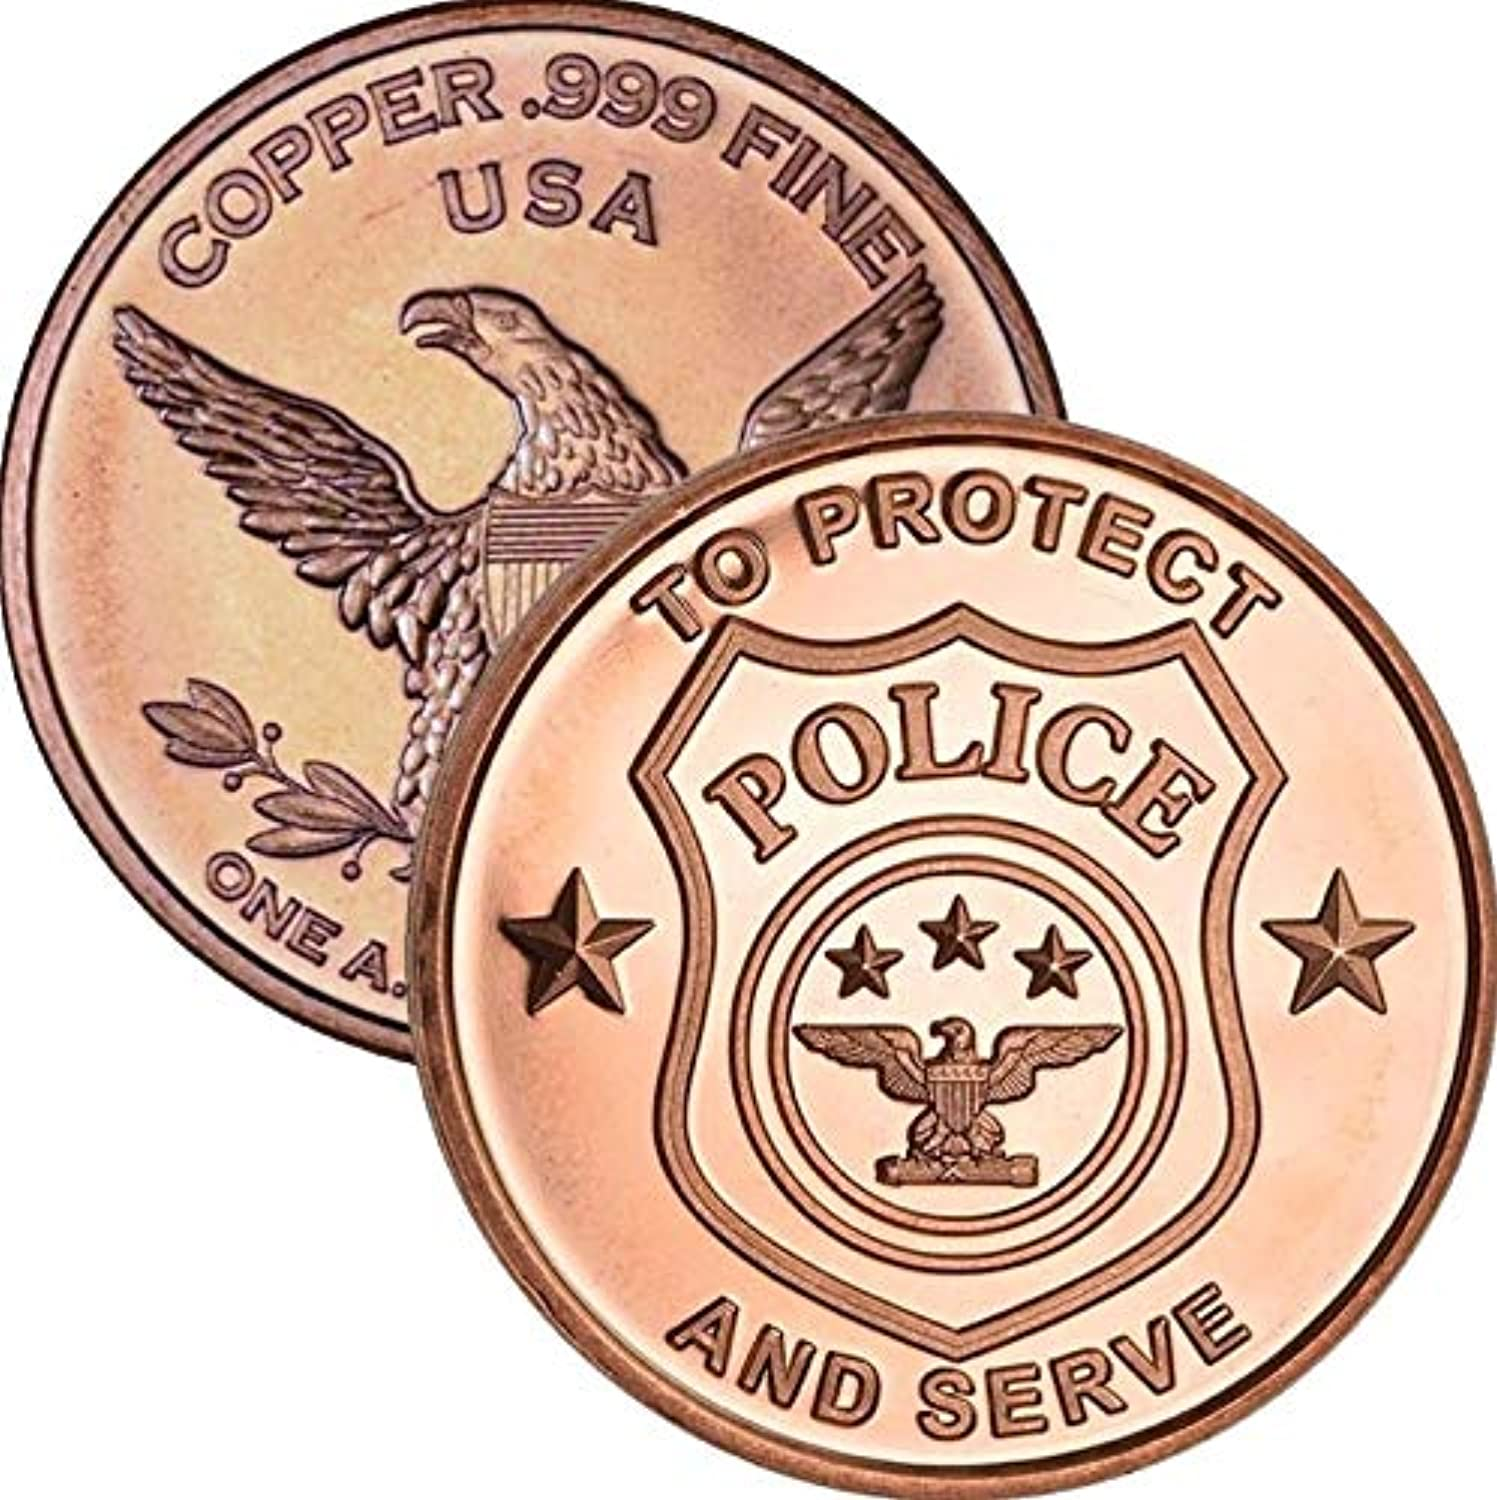 Jig Pro Shop Pledge of Allegiance United States of America 1 oz .999 Pure Copper Round Challenge Coin